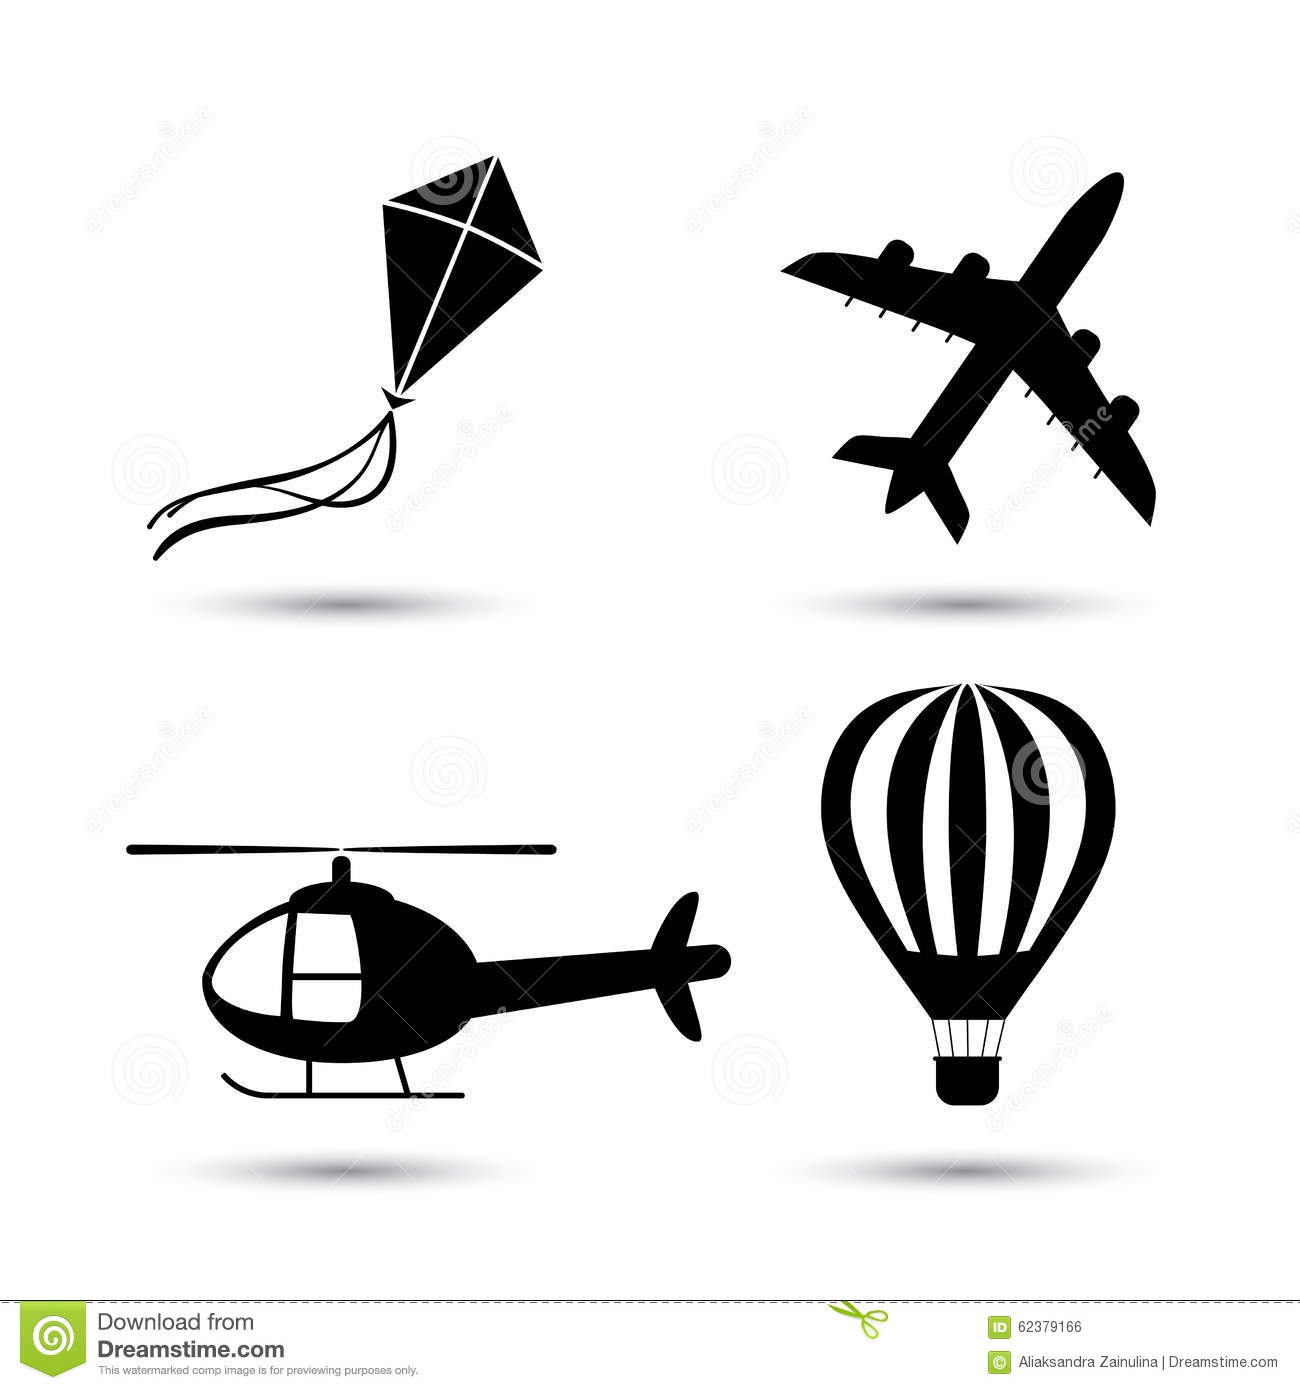 Airplane, Helicopter, Air Balloon And Kite Vector Stock Vector.